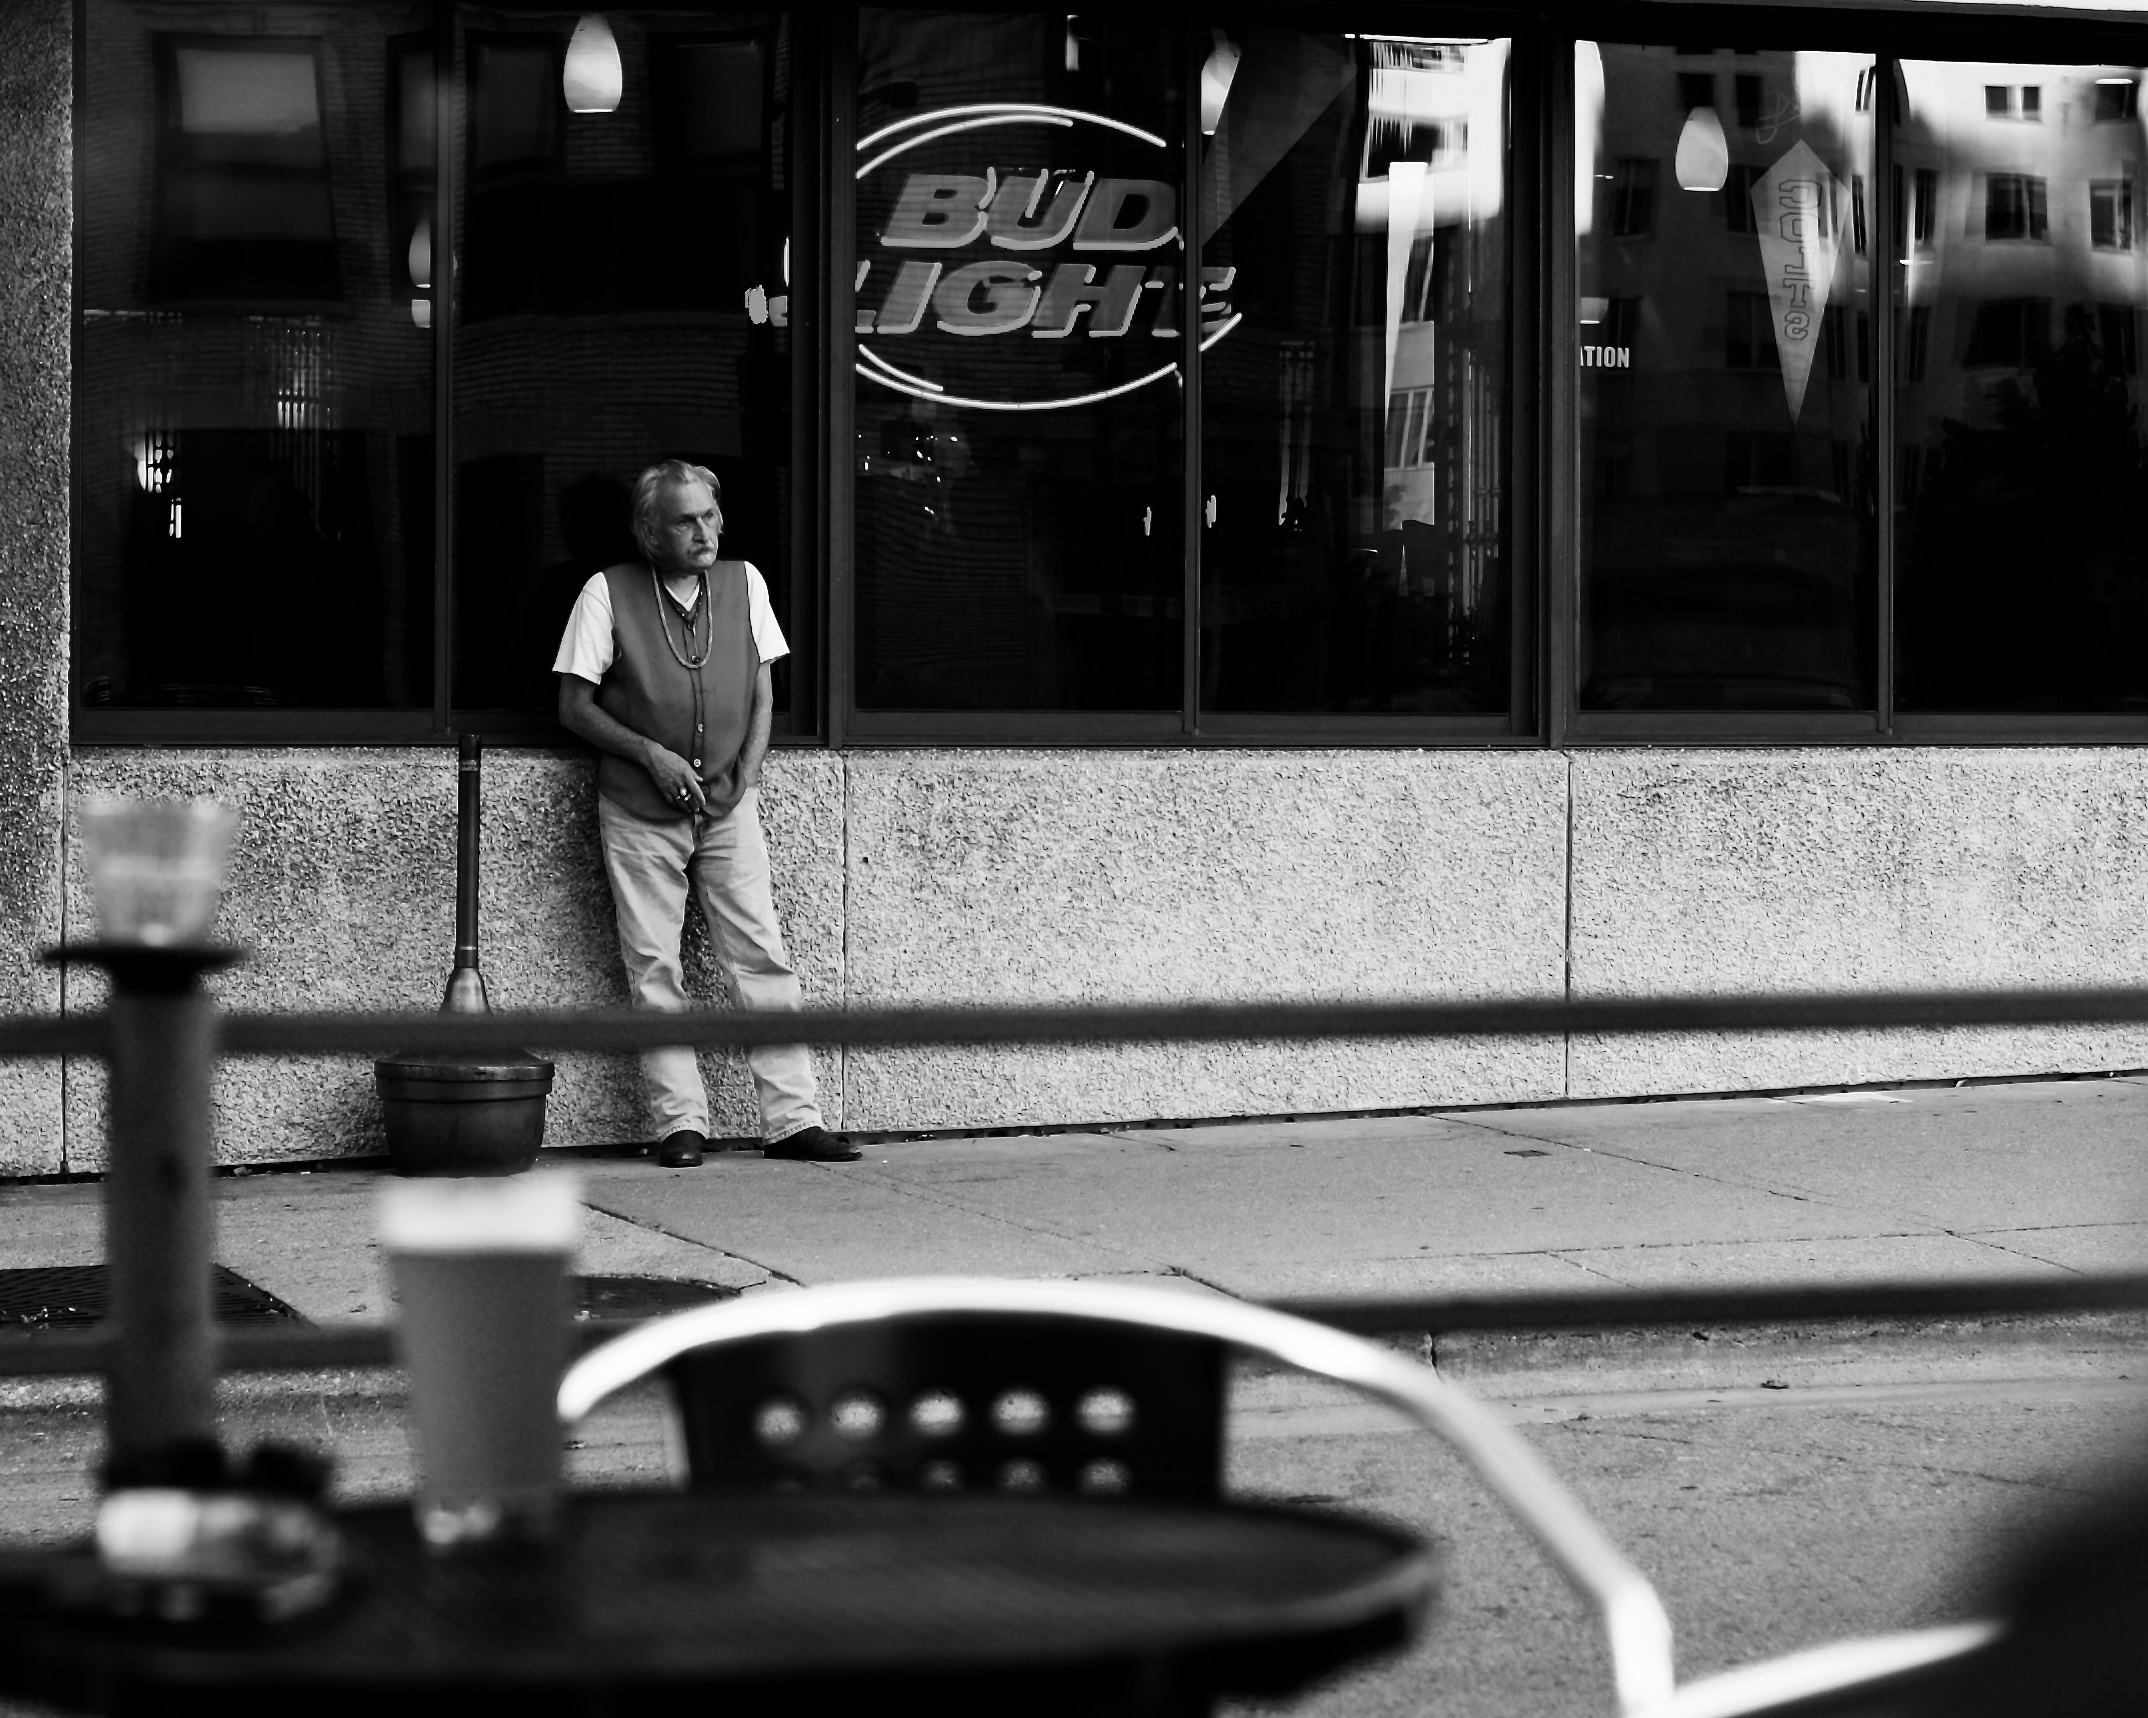 Bud Light. Capitol Square. Madison, Wisconsin. August 2015. © William D. Walker